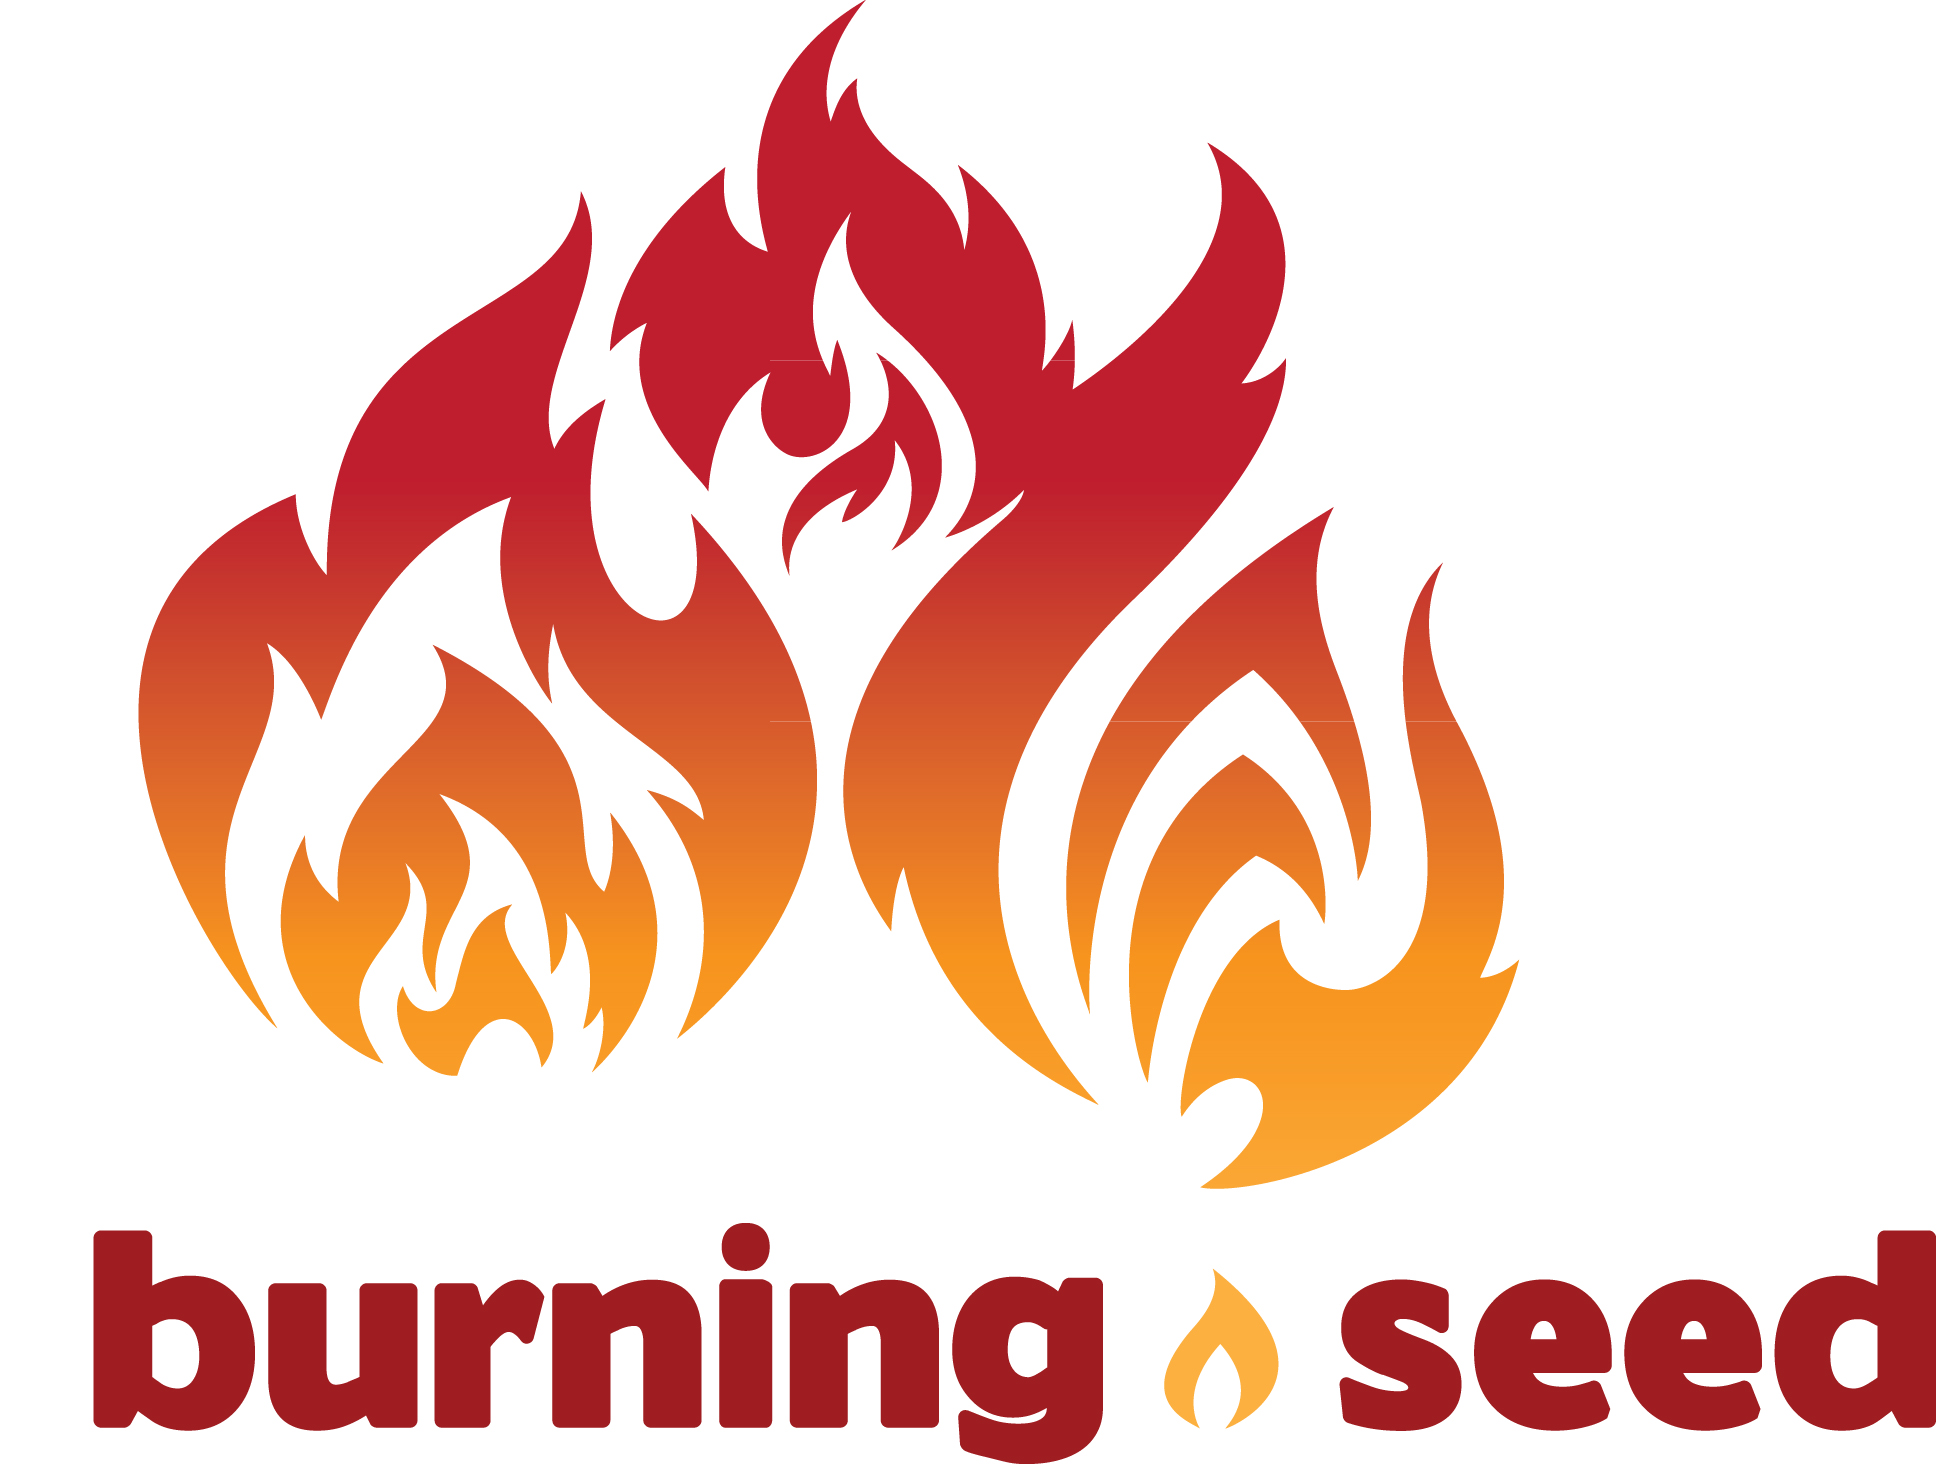 Burning Log PNG - 166268